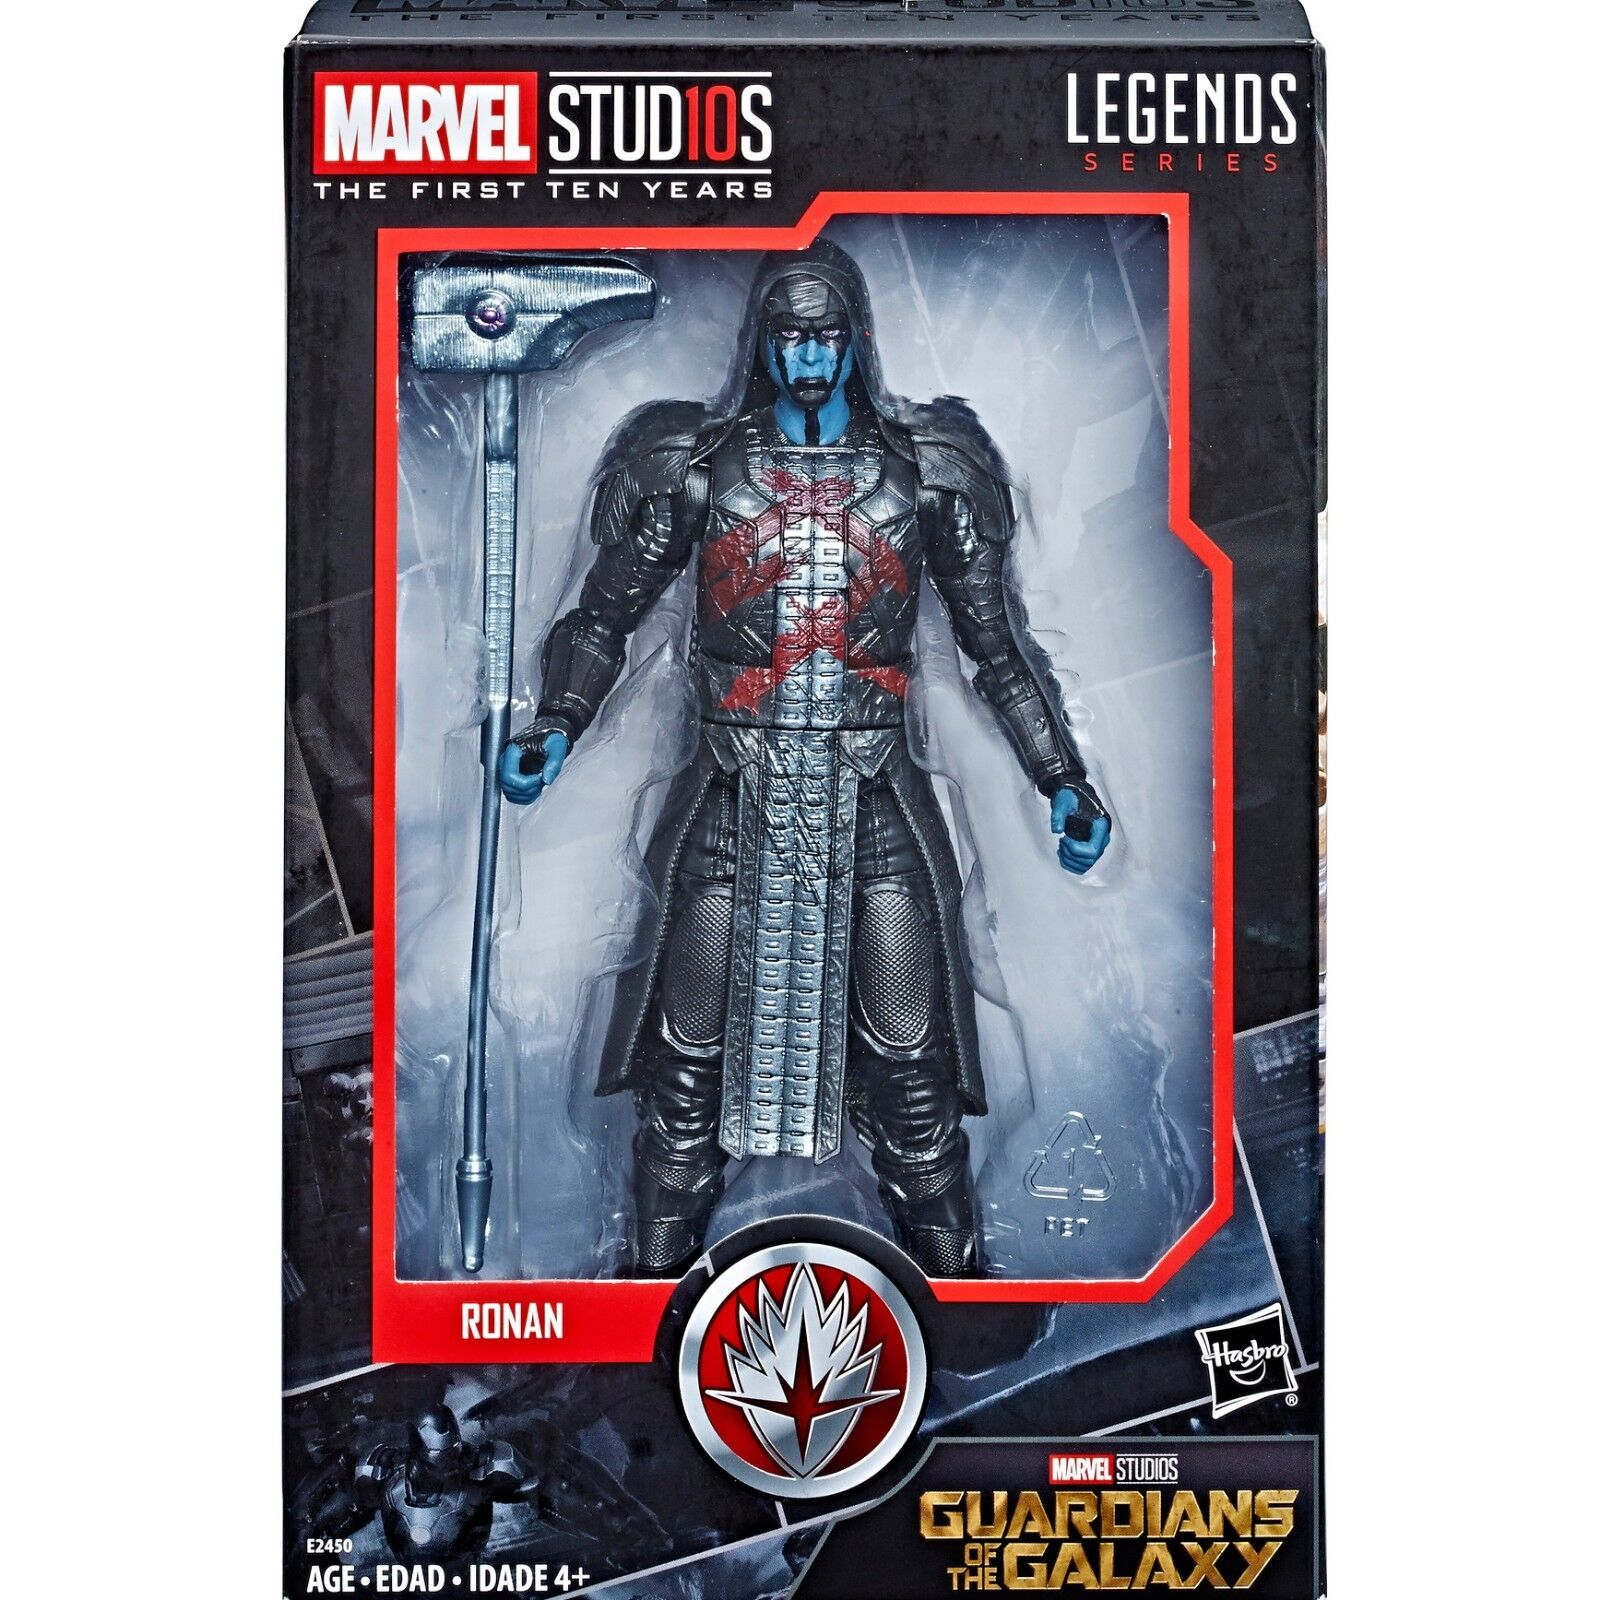 MARVEL LEGENDS 10th Anniversary Cinematic Universe 006 Guardians of Galaxy Ronan